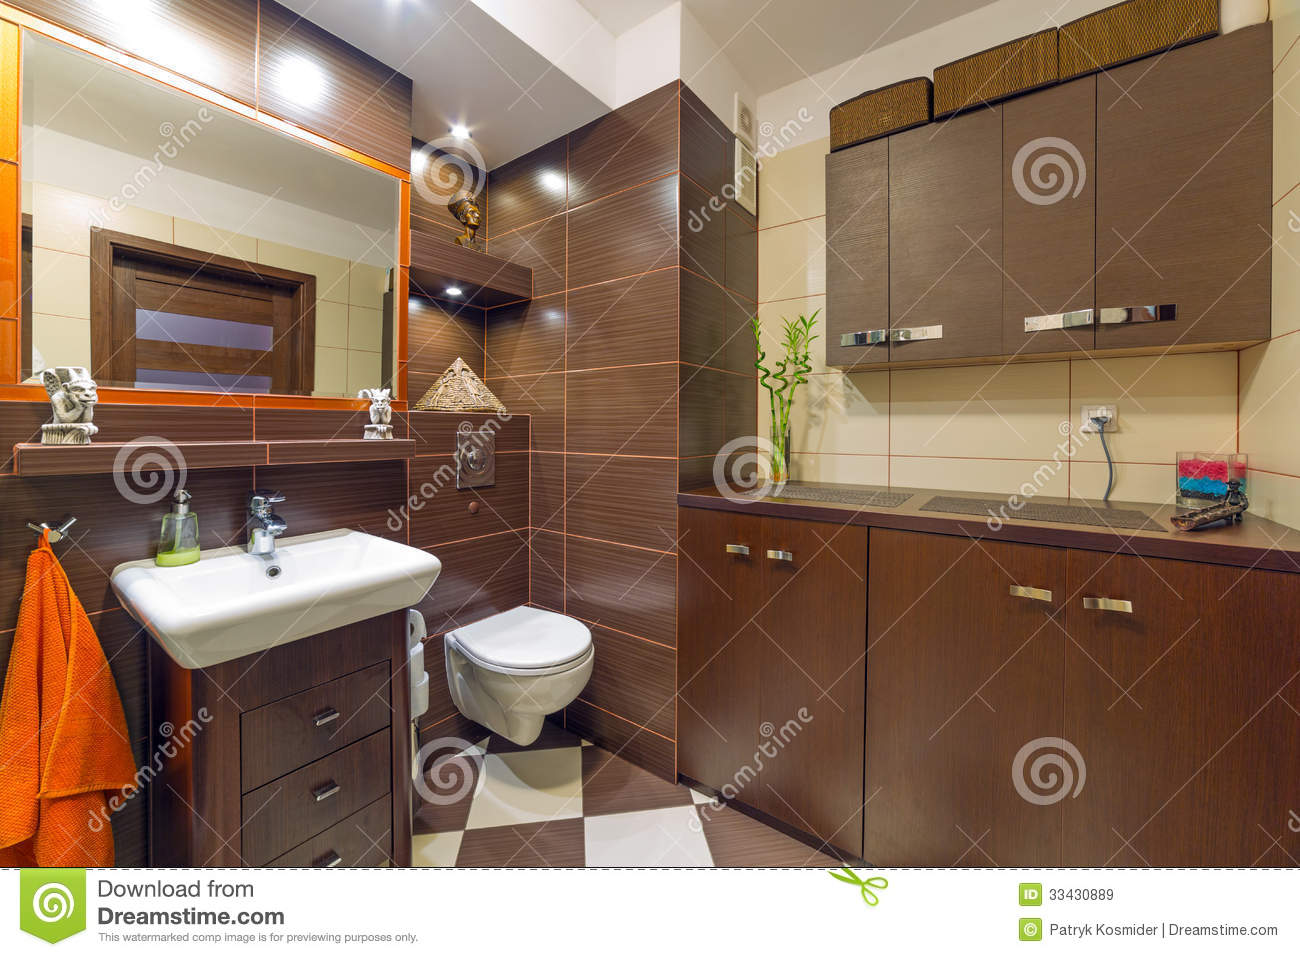 for R f bathrooms and kitchens